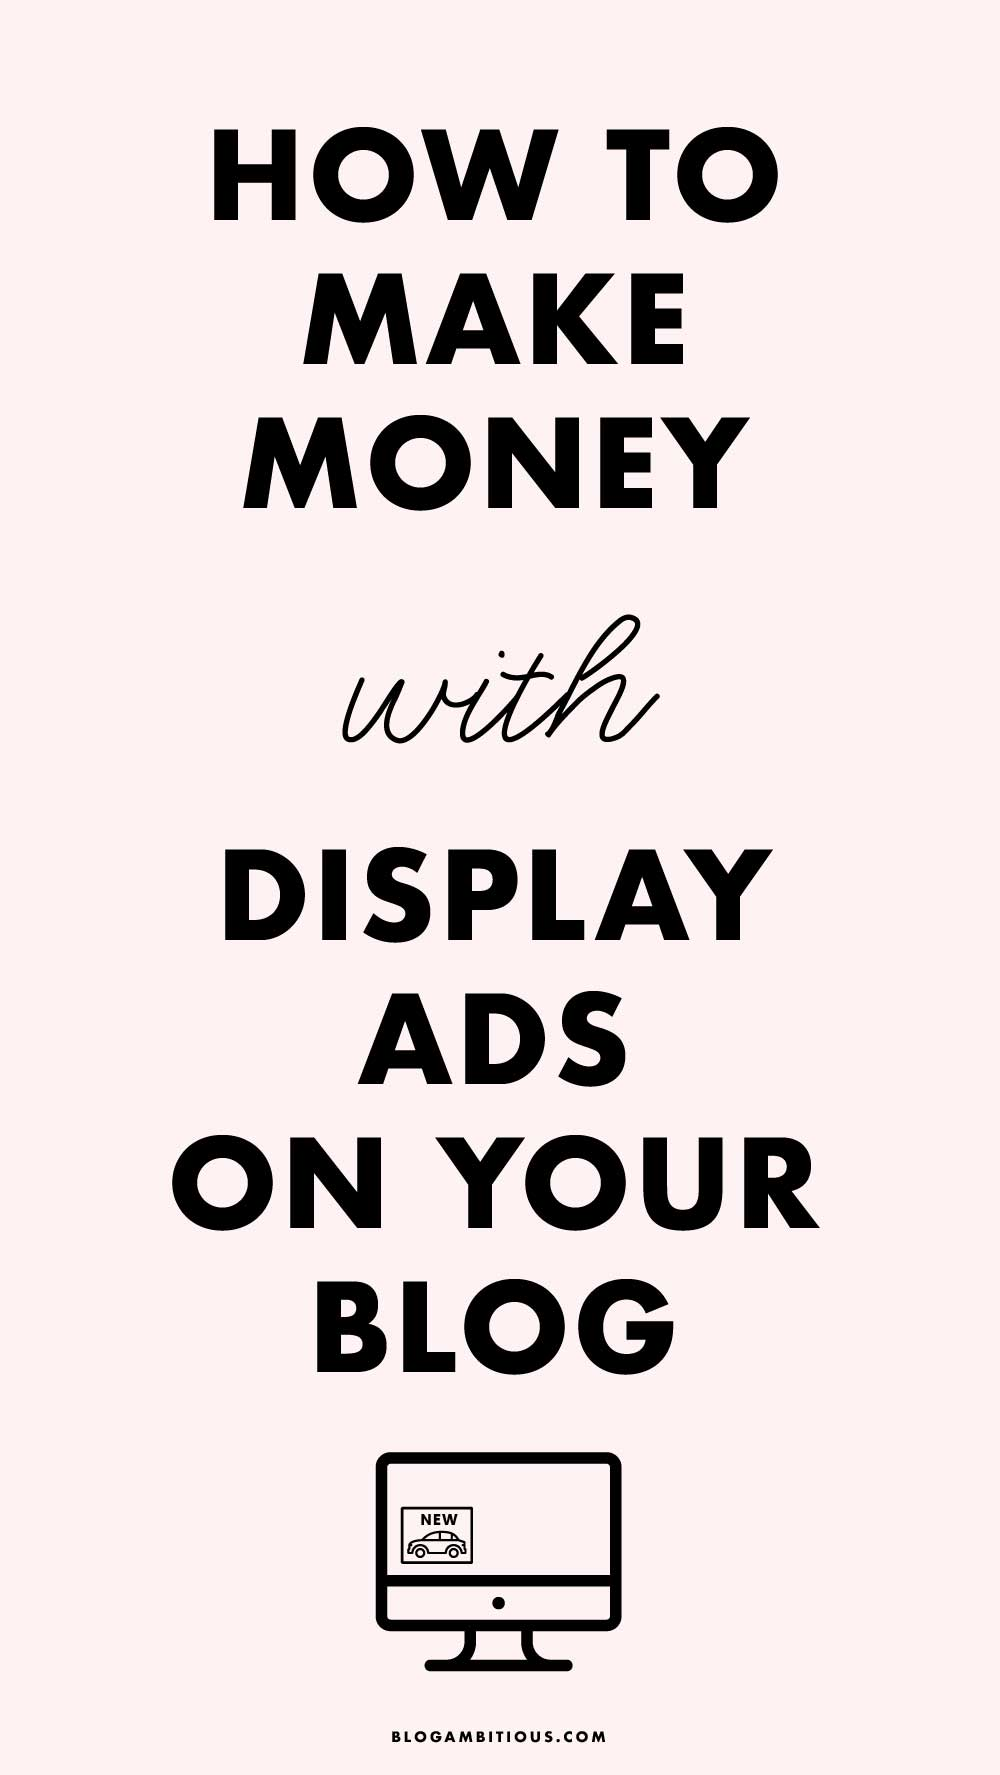 How To Make Money With Display Ads On Your Blog